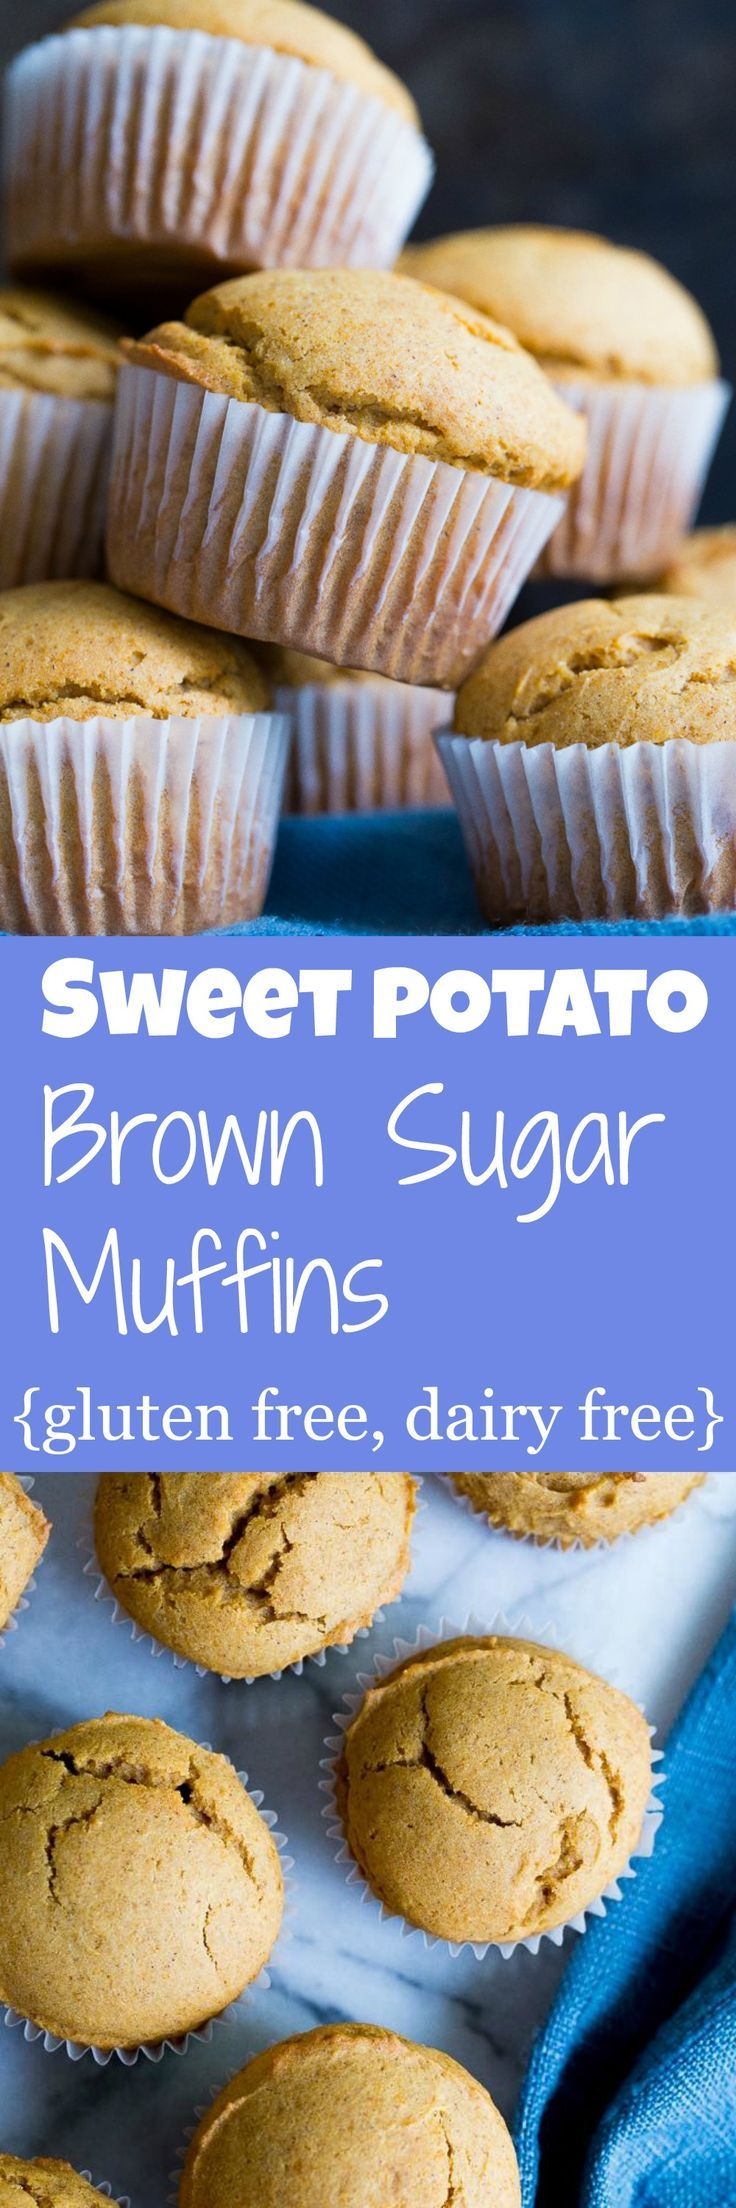 These Sweet Potato and Brown Sugar Muffins the perfect balance of sweet and savory!  They're perfect for breakfast or dessert!  Gluten free and dairy free.